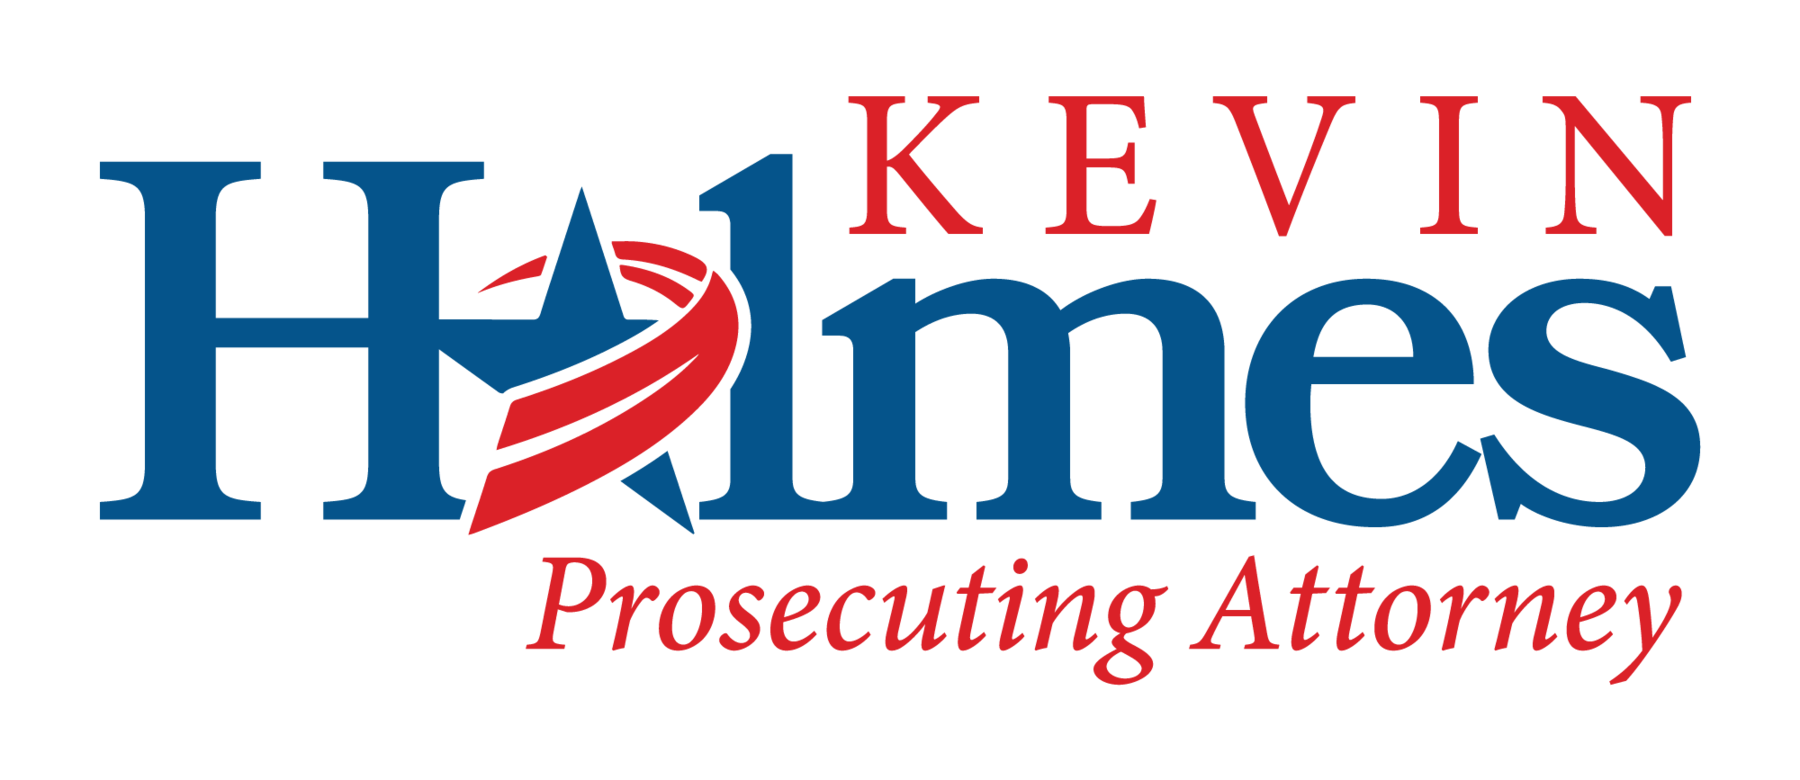 Kevin Holmes for Prosecuting Attorney: General Fund